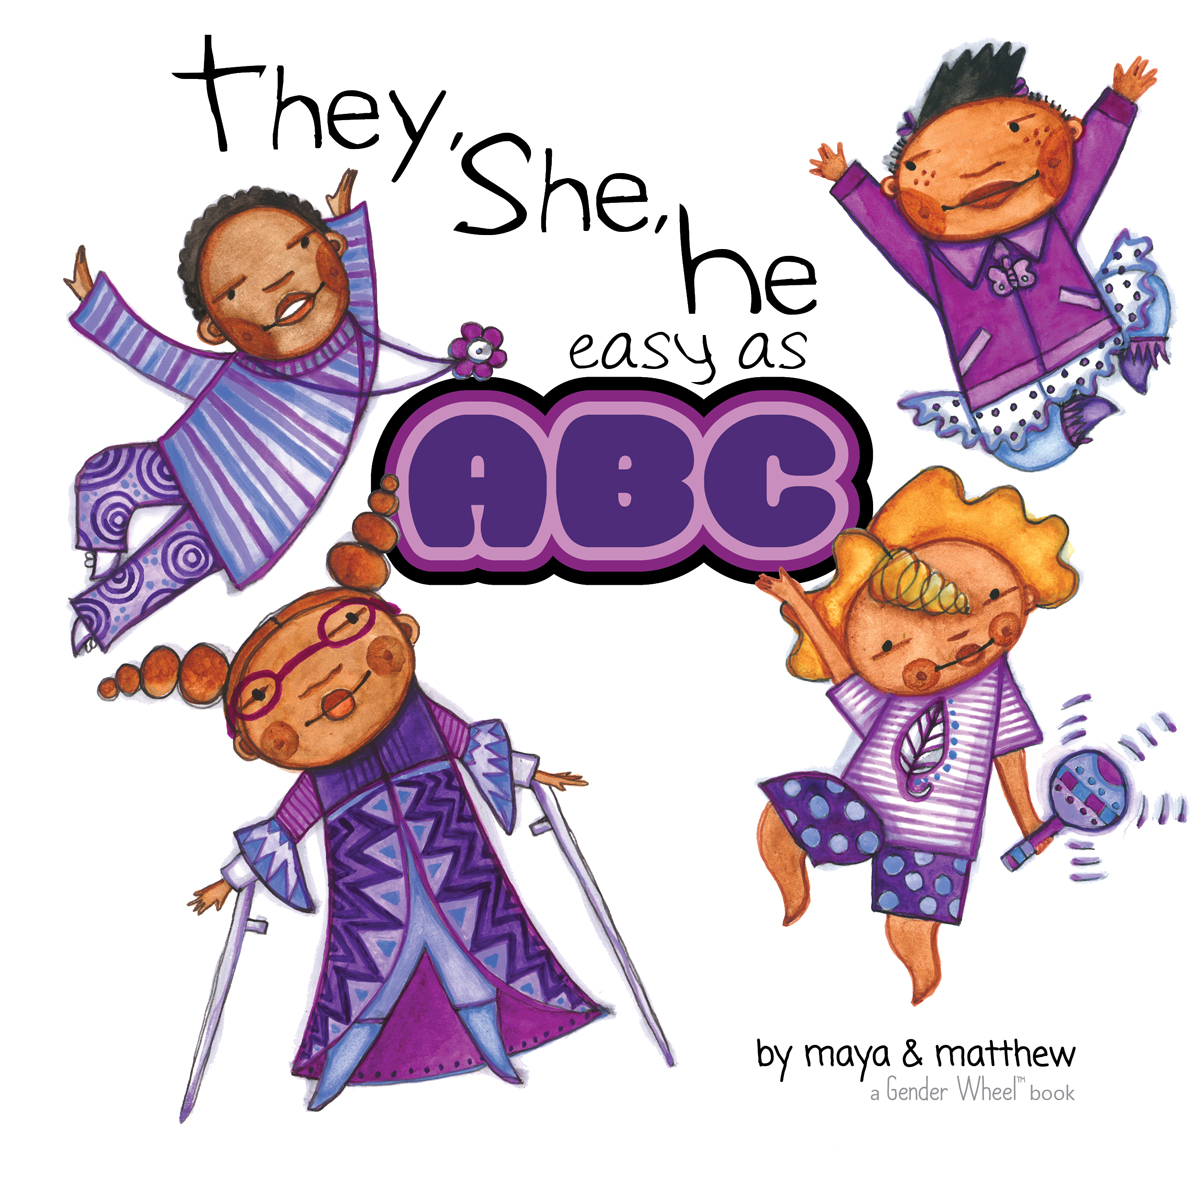 They-she-he-easy-as-ABC-NEW-cover-1200px-gwlogo.jpg